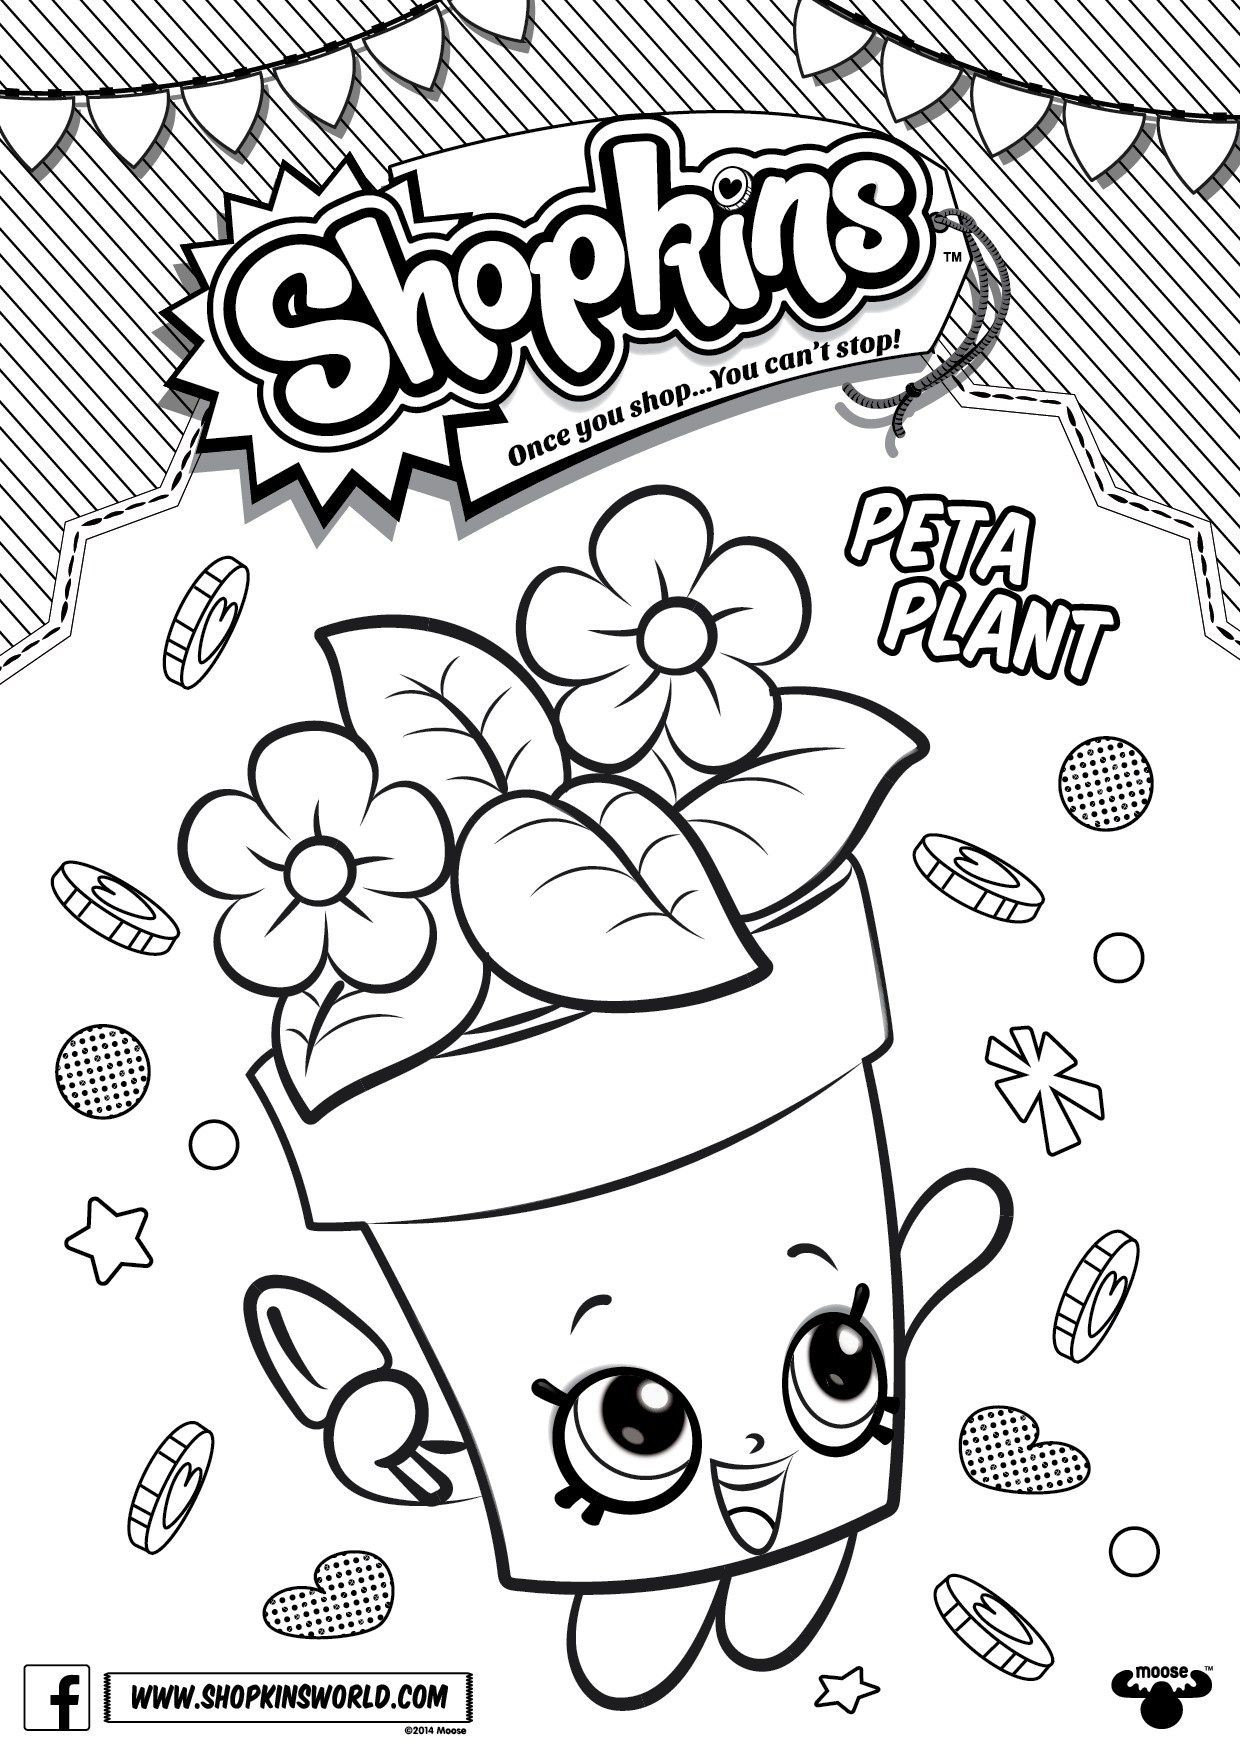 1240x1754 Coloring Pages Shopkins To Print Printable Shopkins Coloring